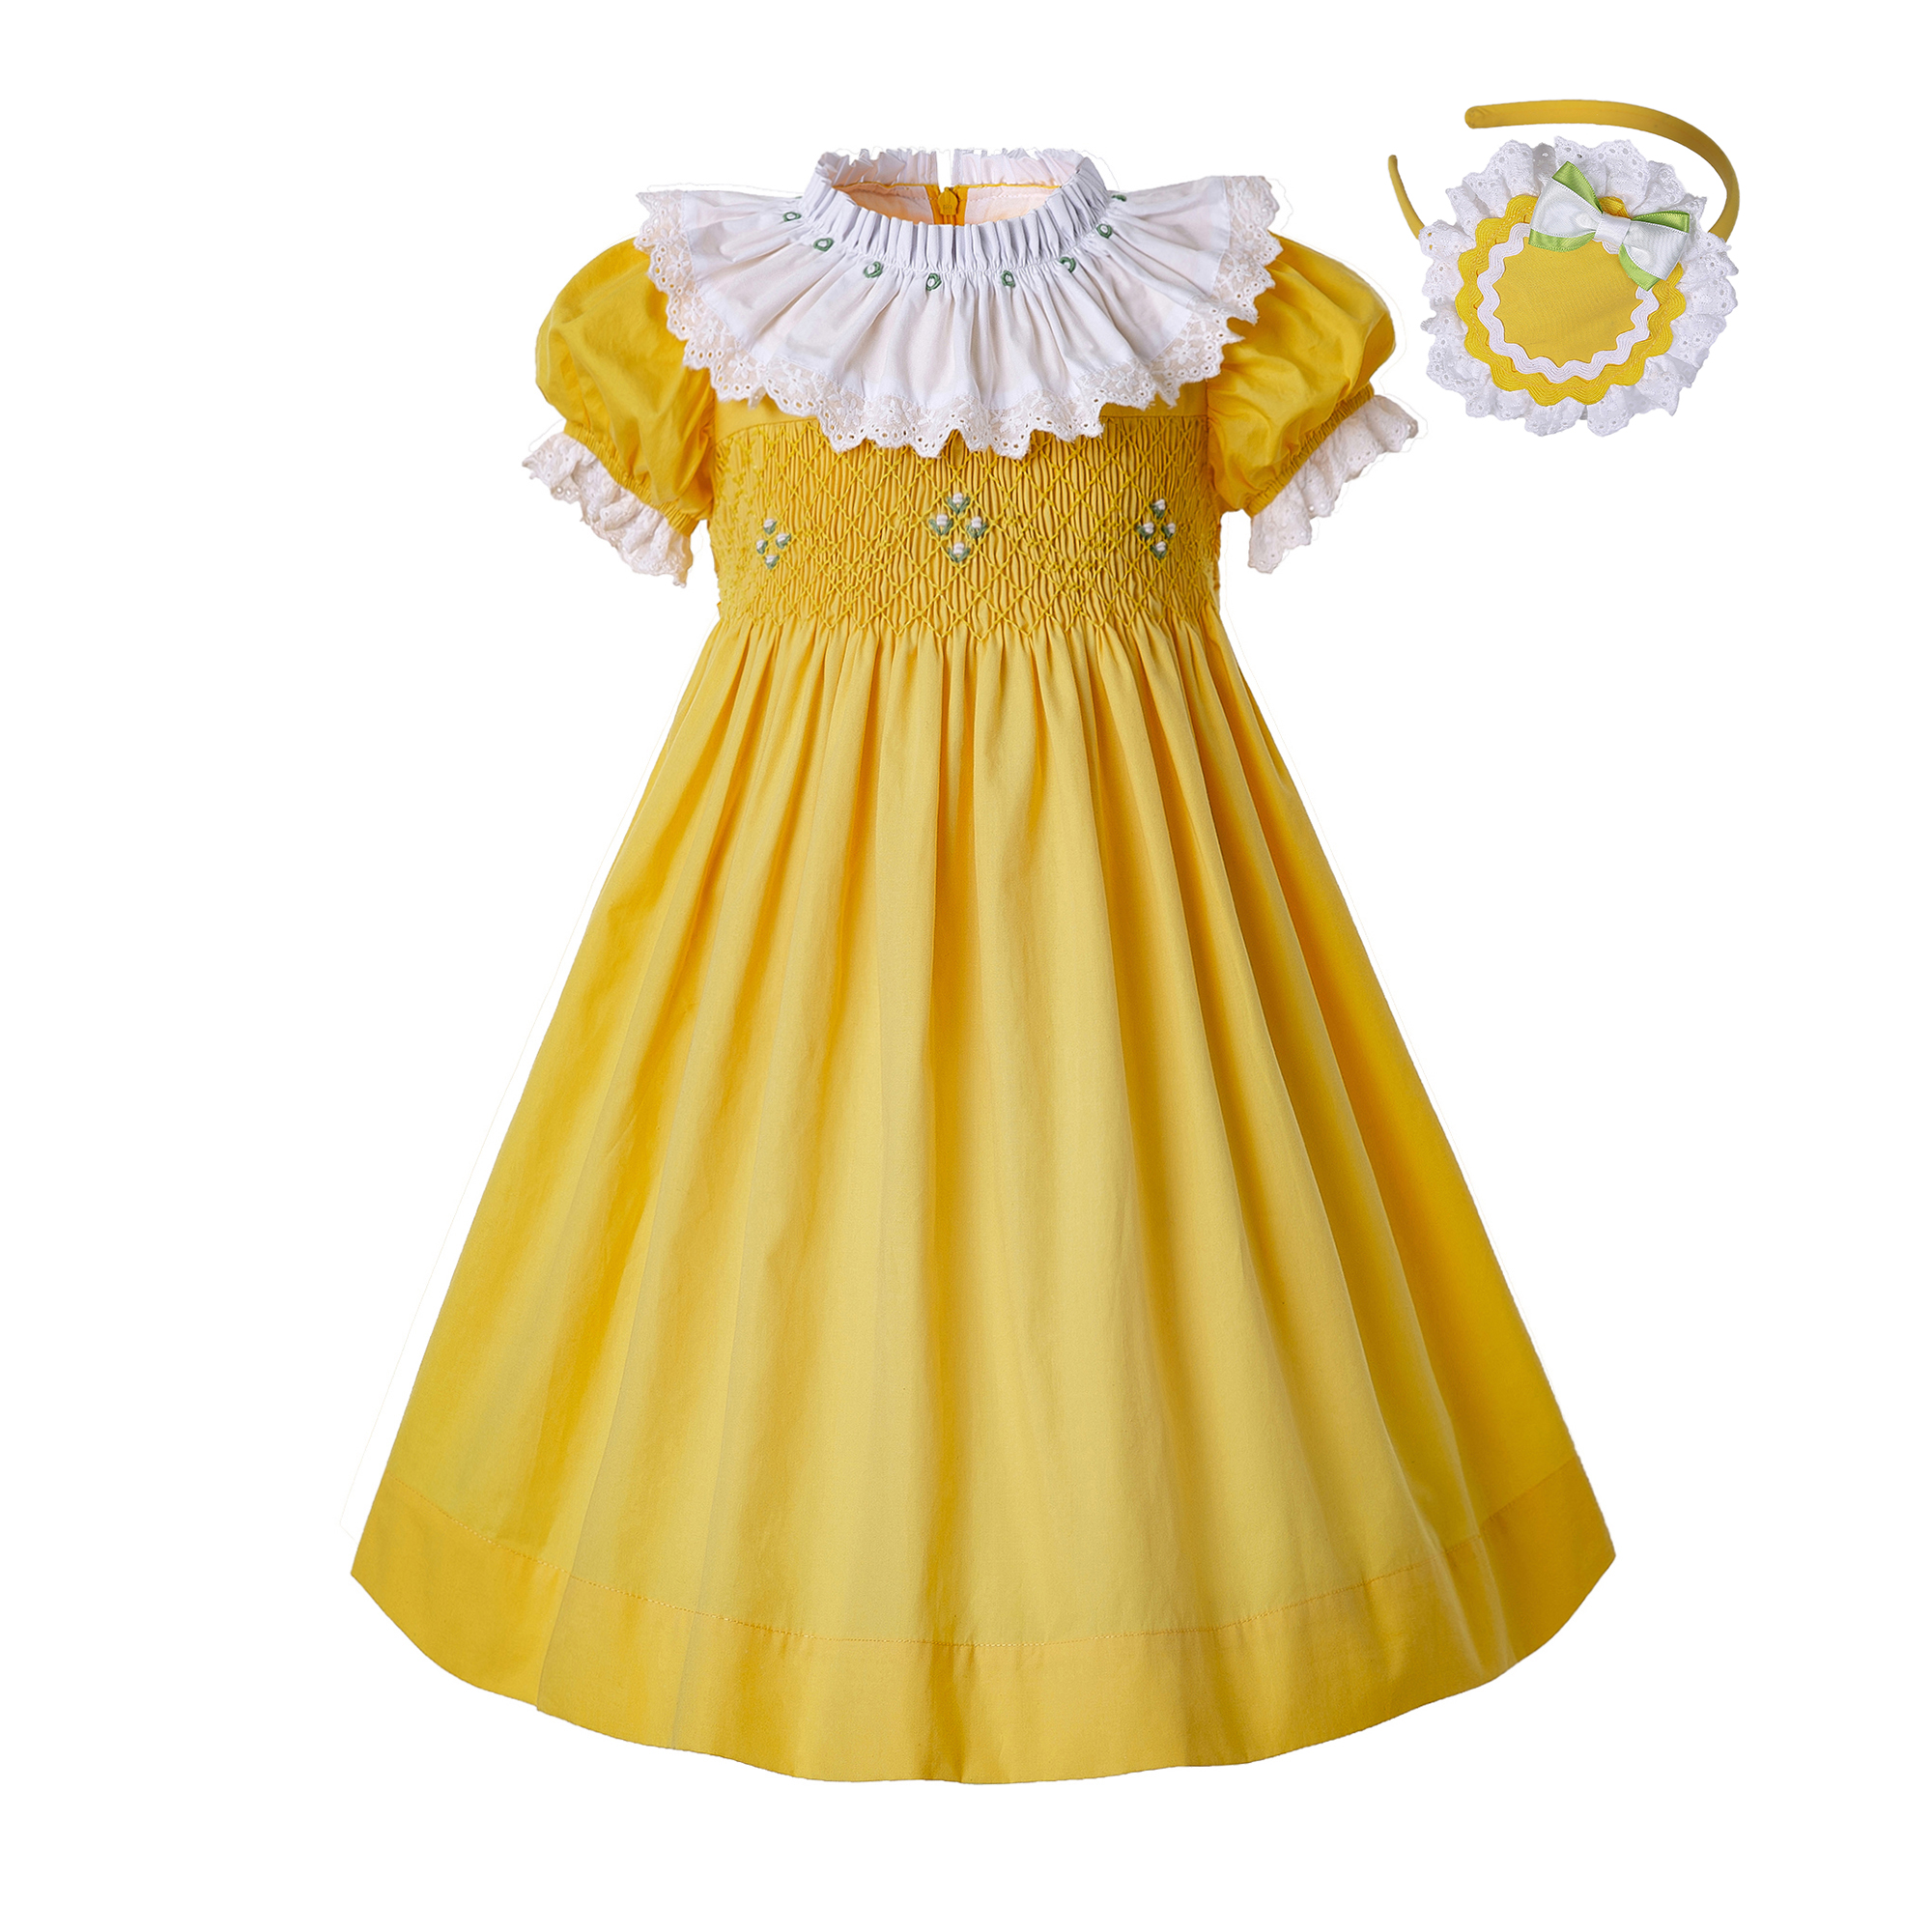 Pettigirl Summer Yellow Smocked Party Dresses For Toddlers Round Collar Smocked Baby Smocked Easter Girls Dress